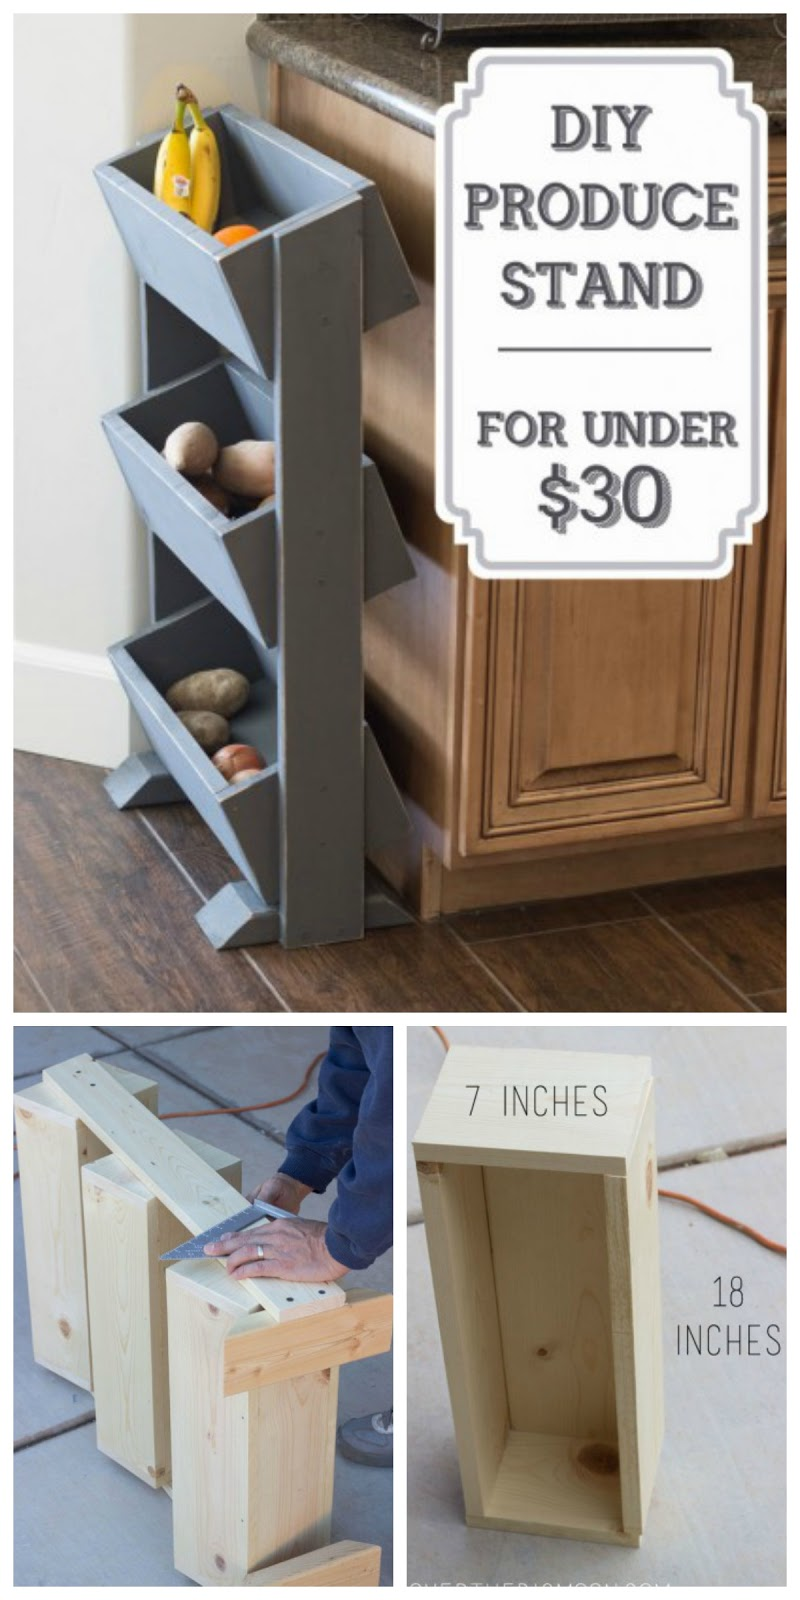 Diy Kitchen Produce Stand For Under 30 Handy Homemade: easy diy storage ideas for small homes